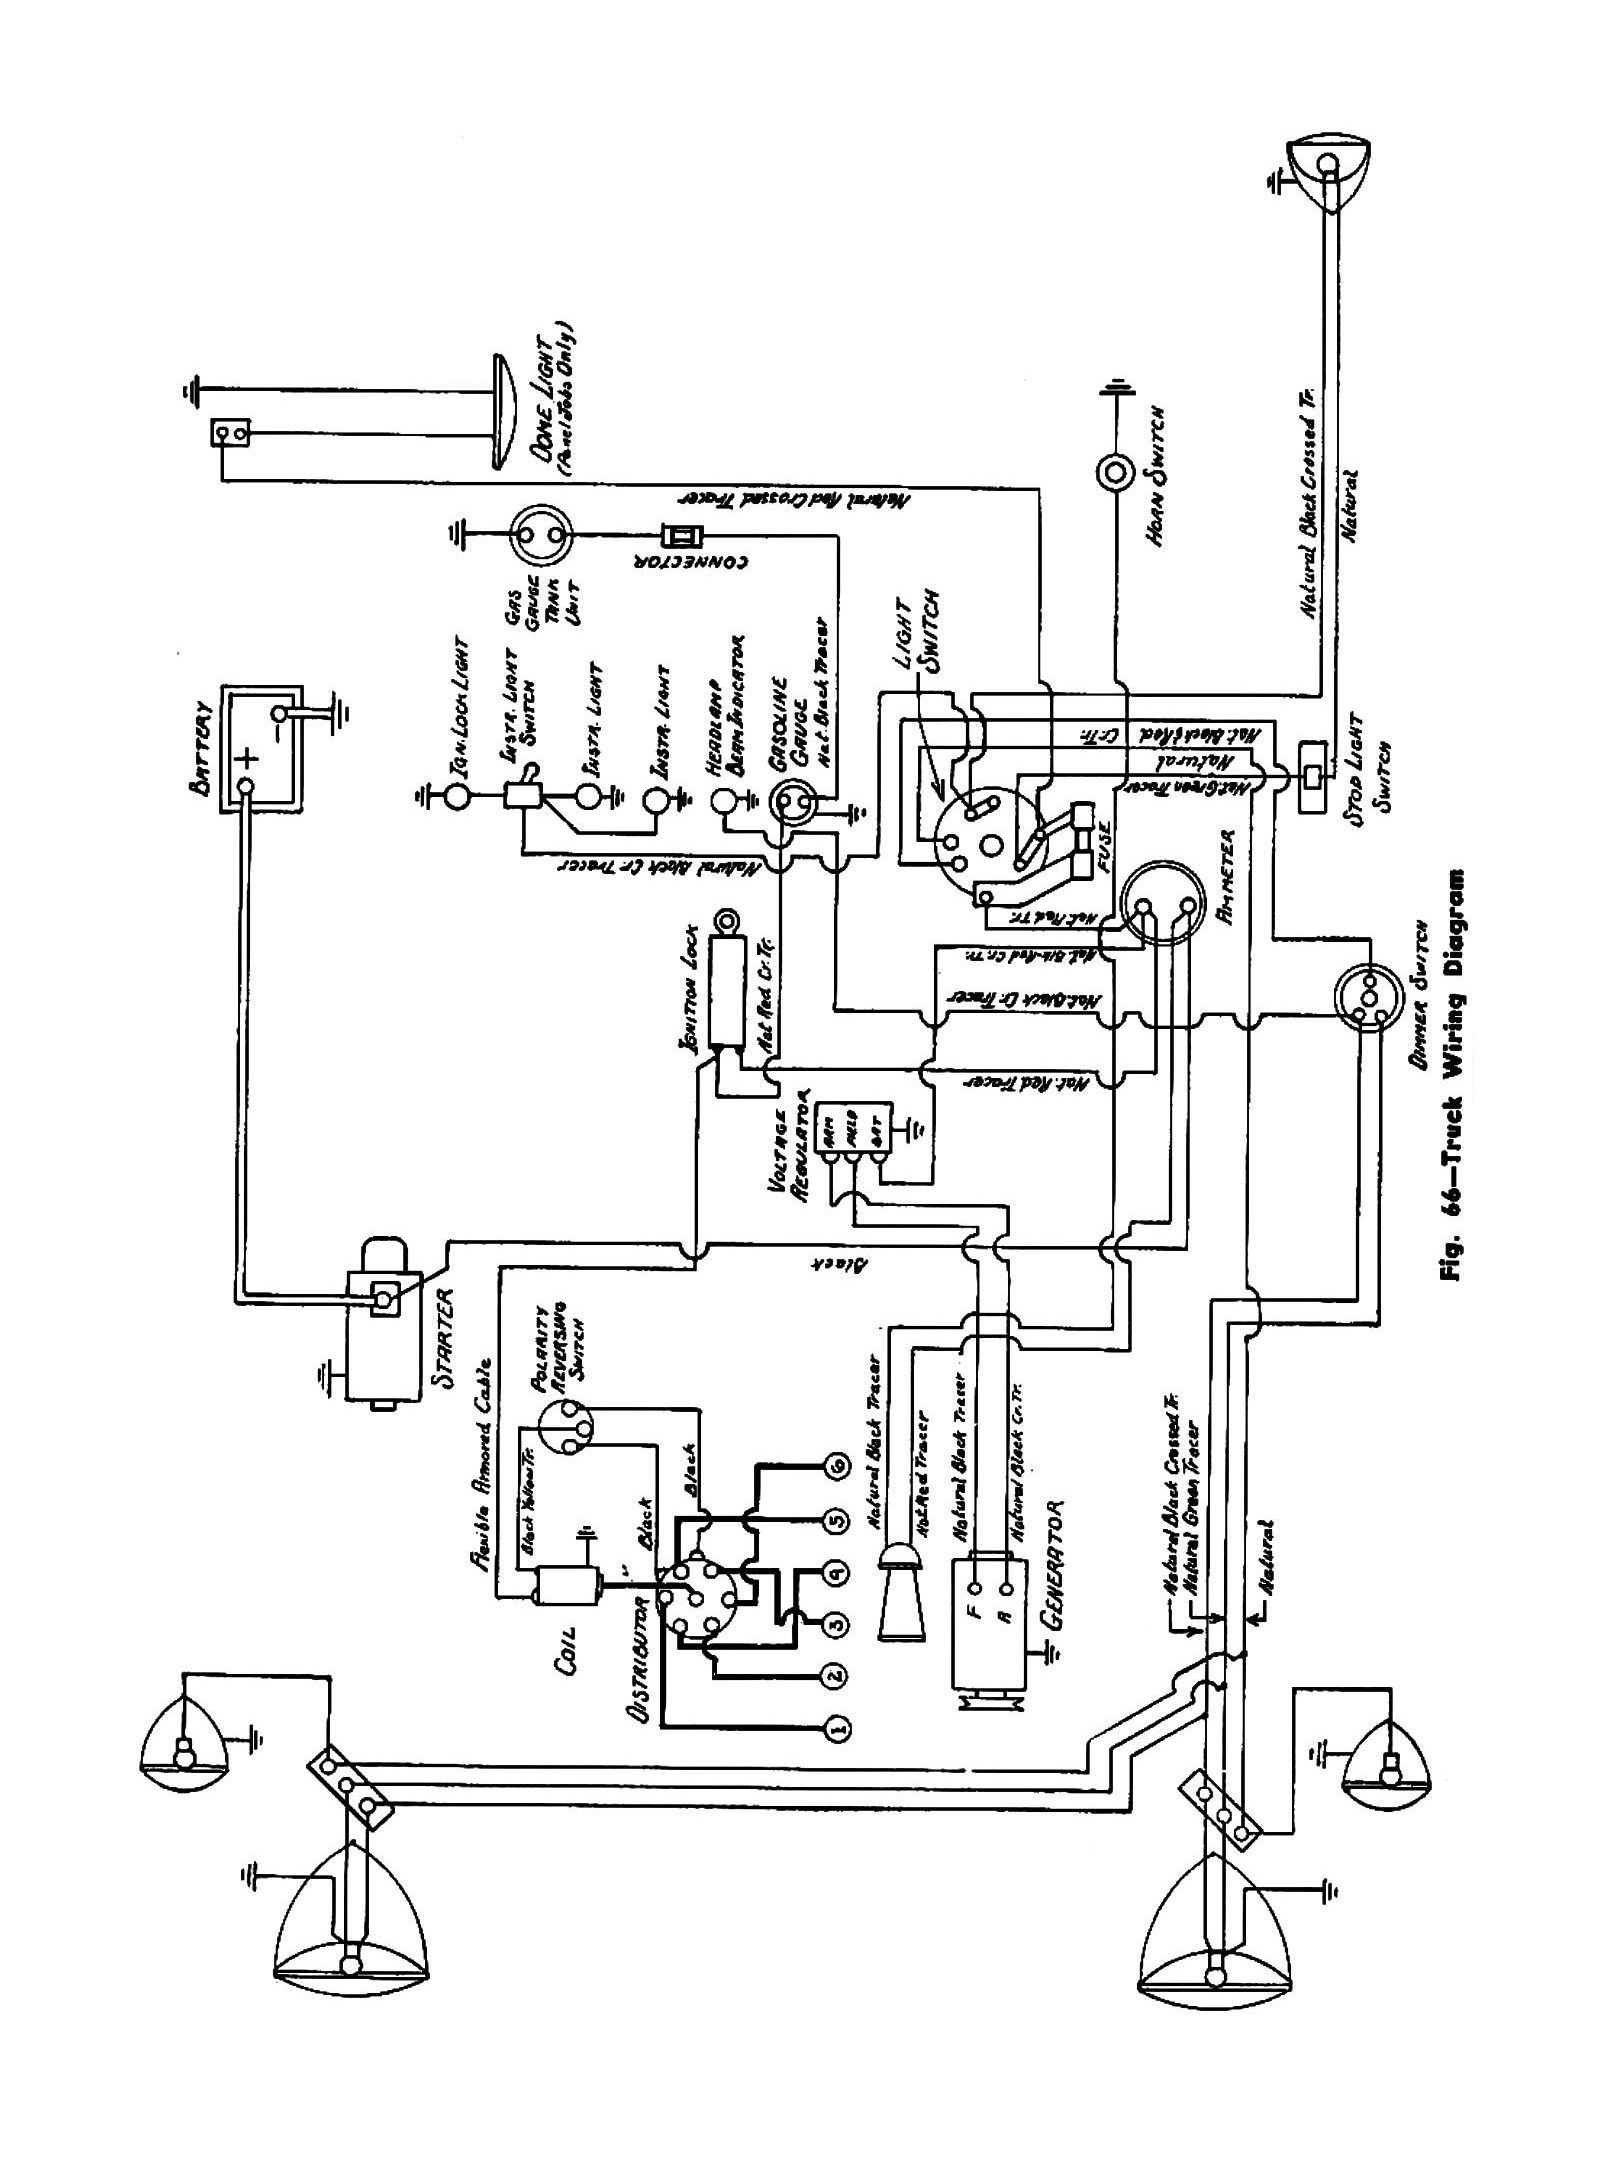 hight resolution of 1958 chevy truck wiring diagram automotive wiring diagrams chevy truck wiring in oregon chevy truck wiring